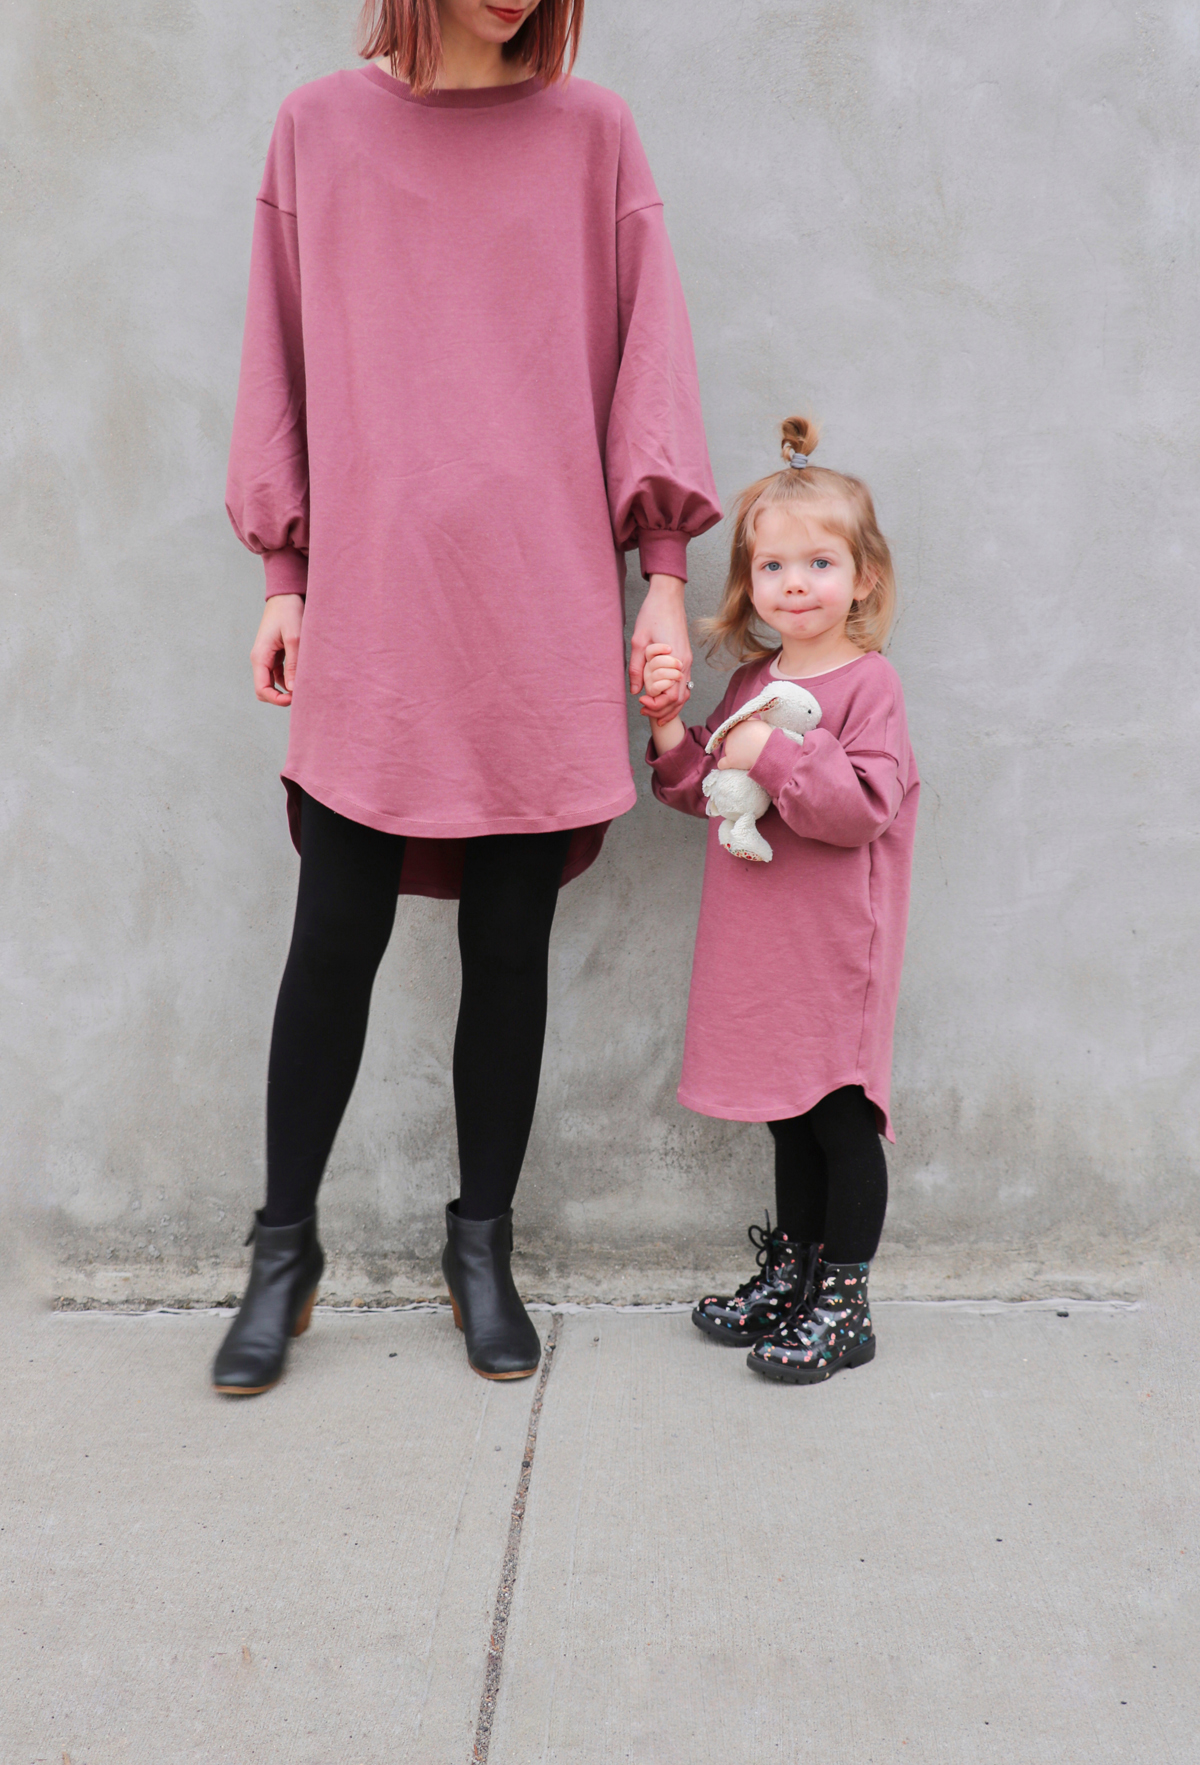 how to make a sweatshirt dress with bishop sleeves using the Jarrah sweater pattern by Megan Nielsen Patterns